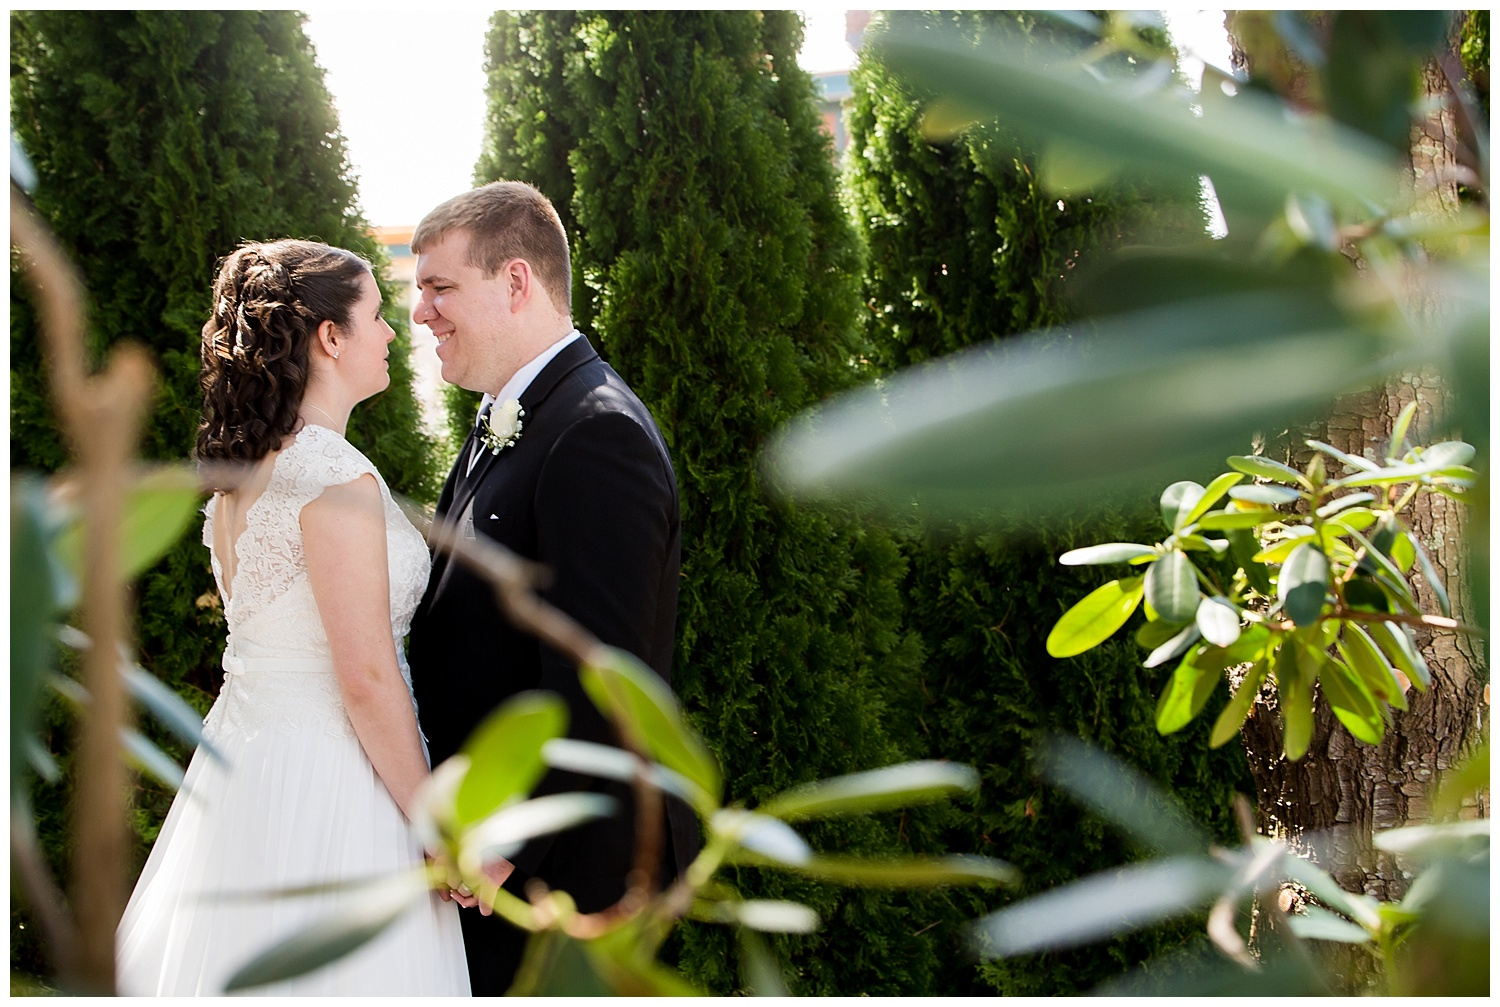 Kayla & Ryan – Tewksbury Country Club Wedding